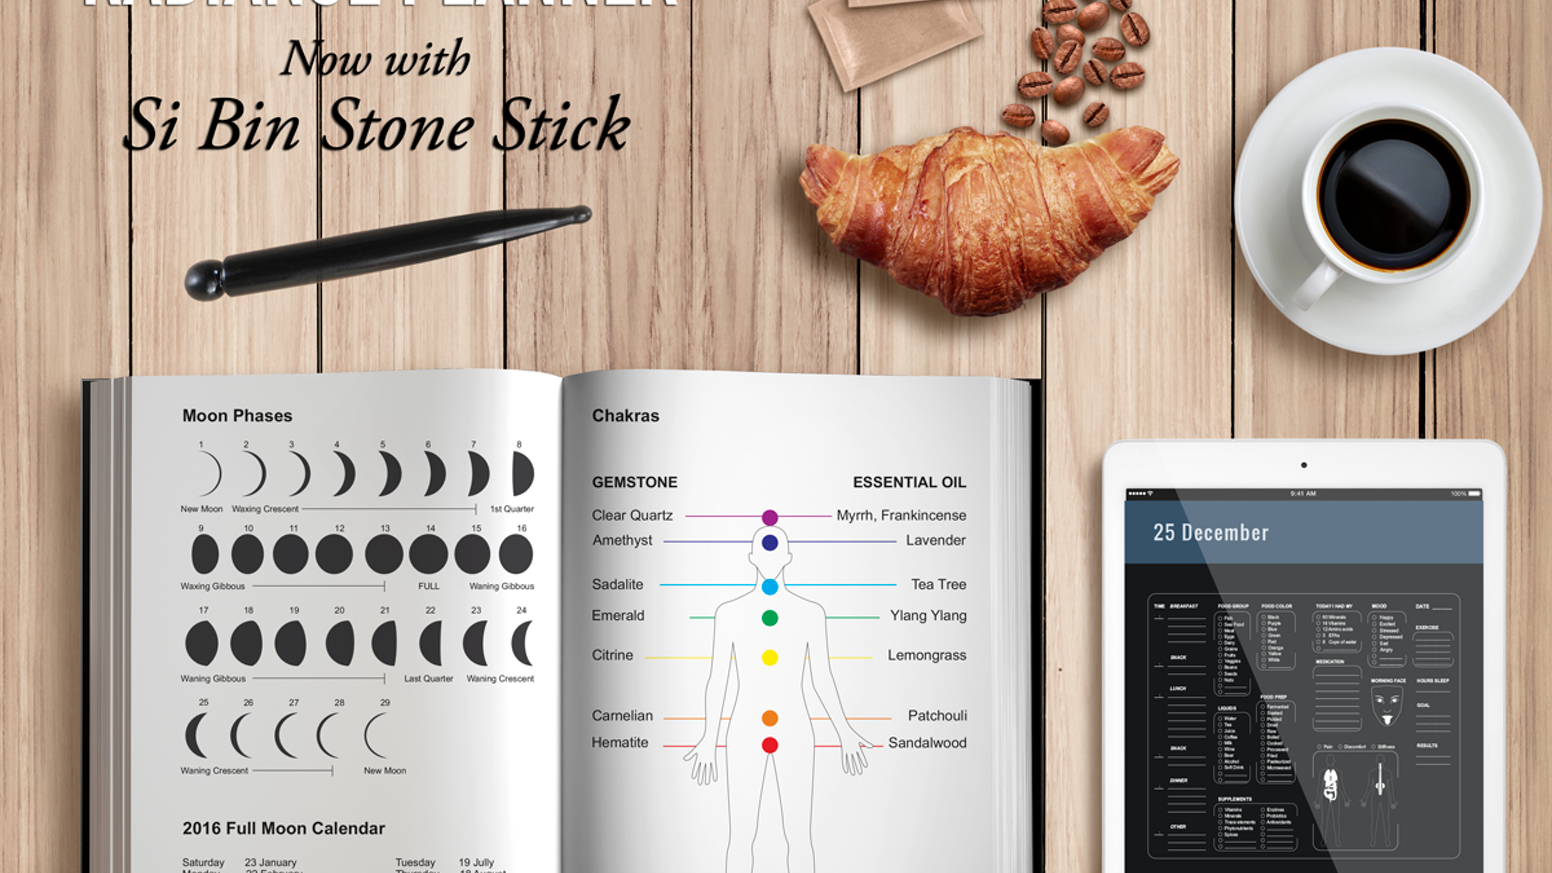 The Most Comprehensive Nutrition and Health Diary with Real Si Bin/Bian Acupressure Stone Stick